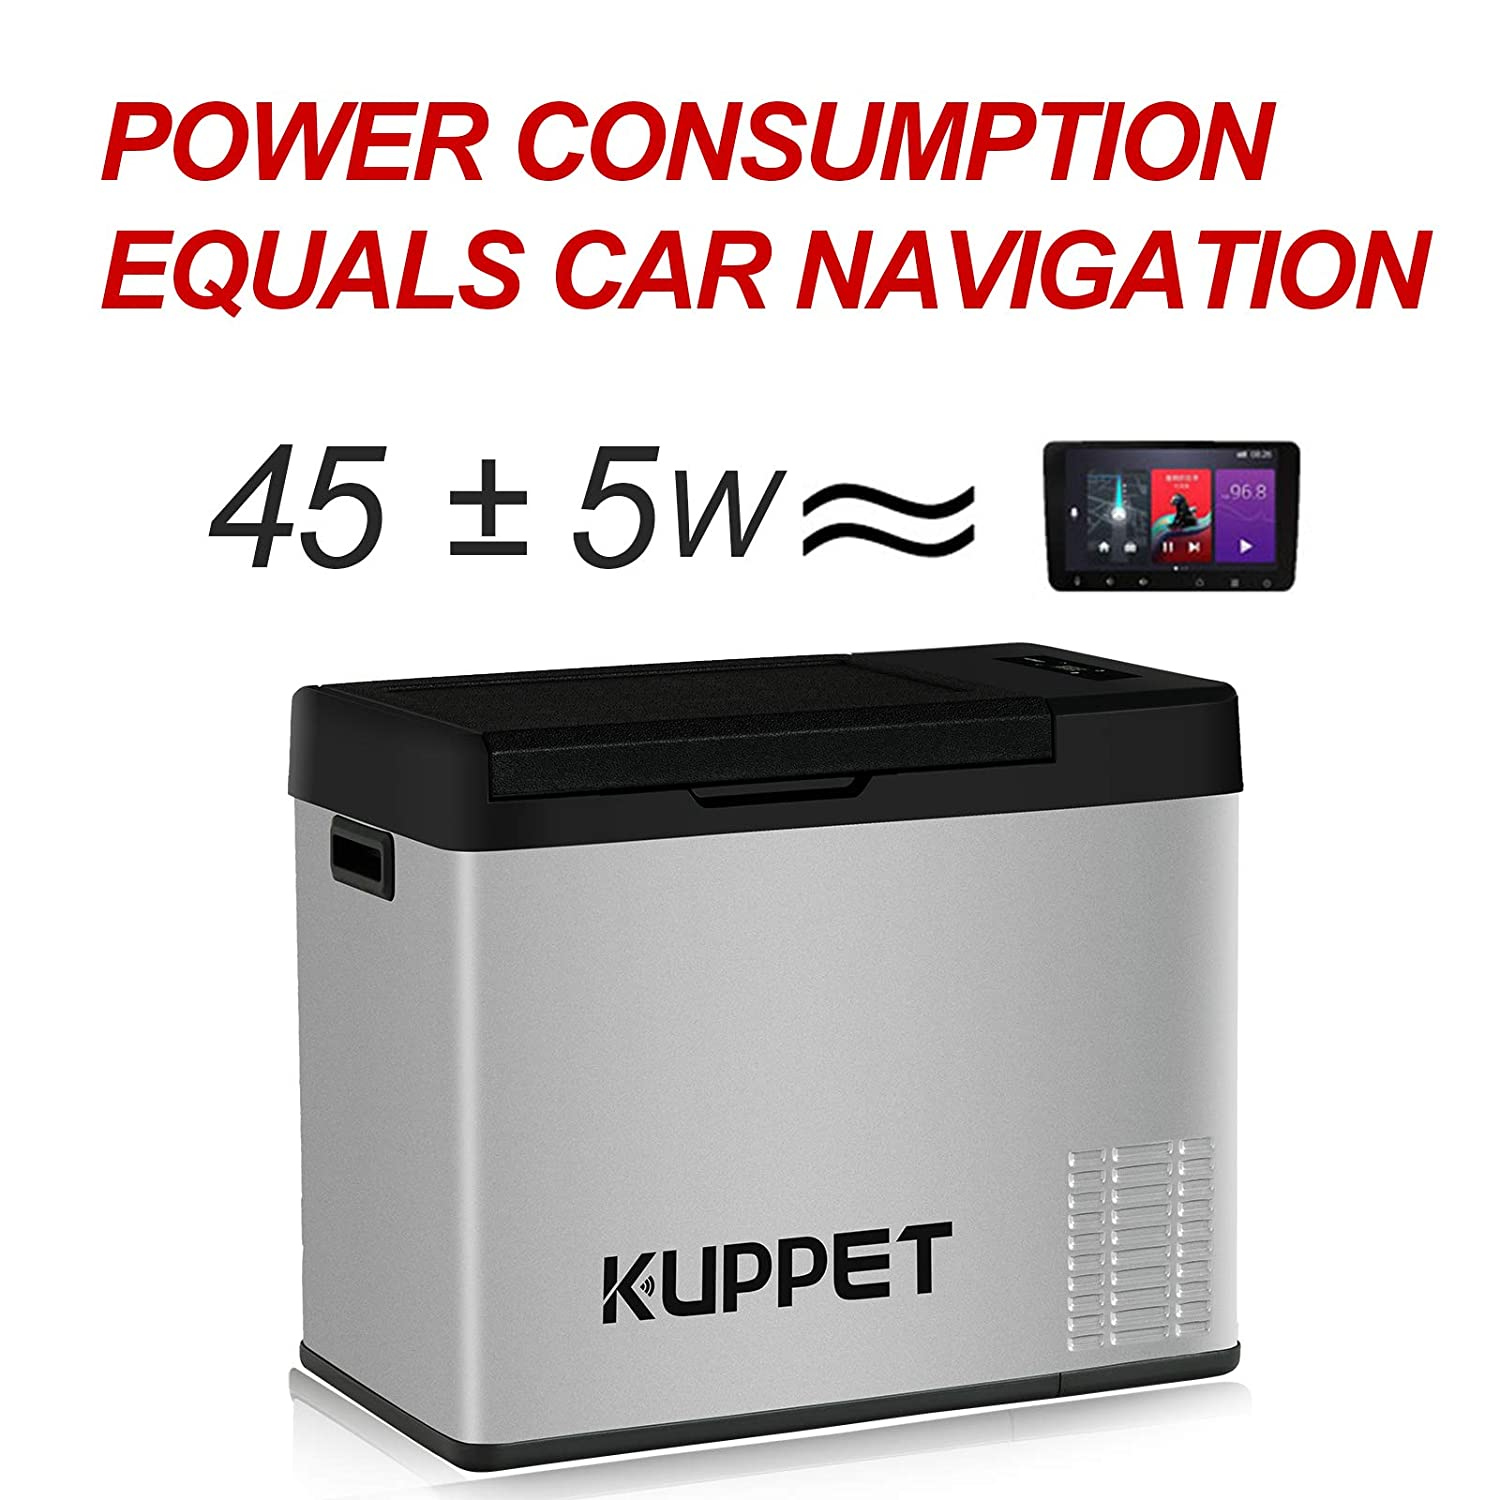 Electric Cooler for for Truck Party Travel Picnic Outdoor Camping Car Fridge KUPPET Portable Refrigerator//Freezer 16Qt